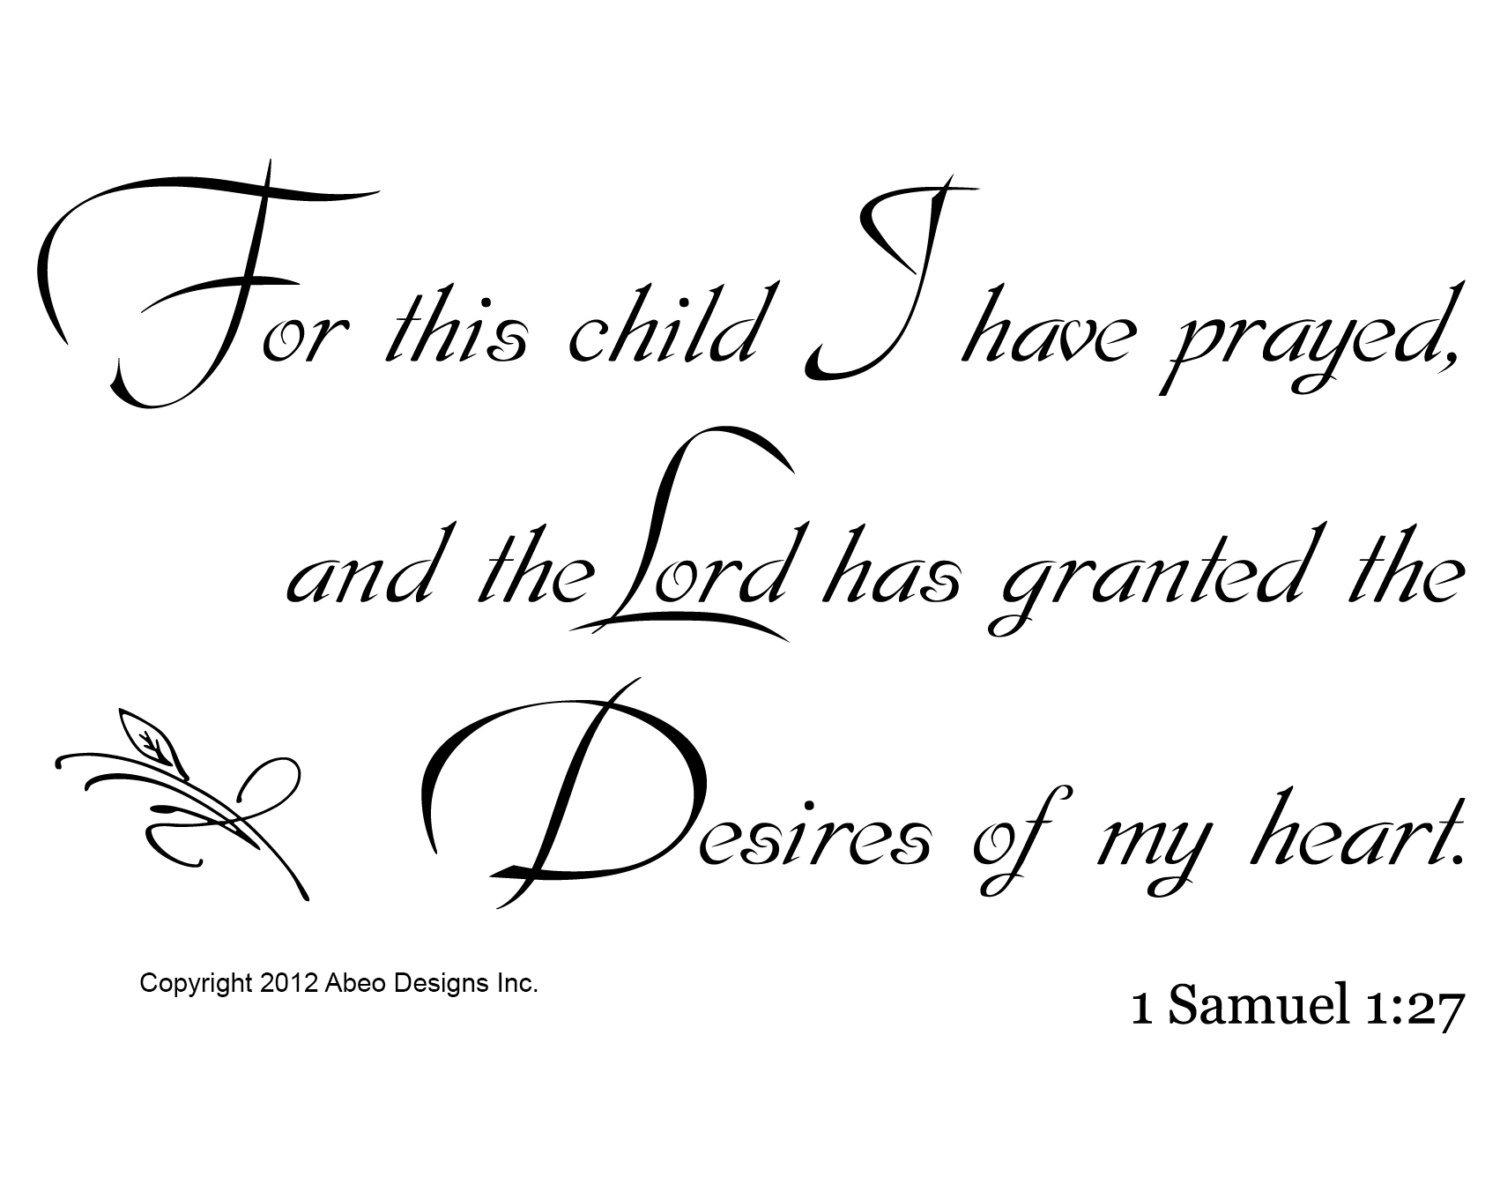 1 samuel 1 27 wall decal  for this child from abeo designs